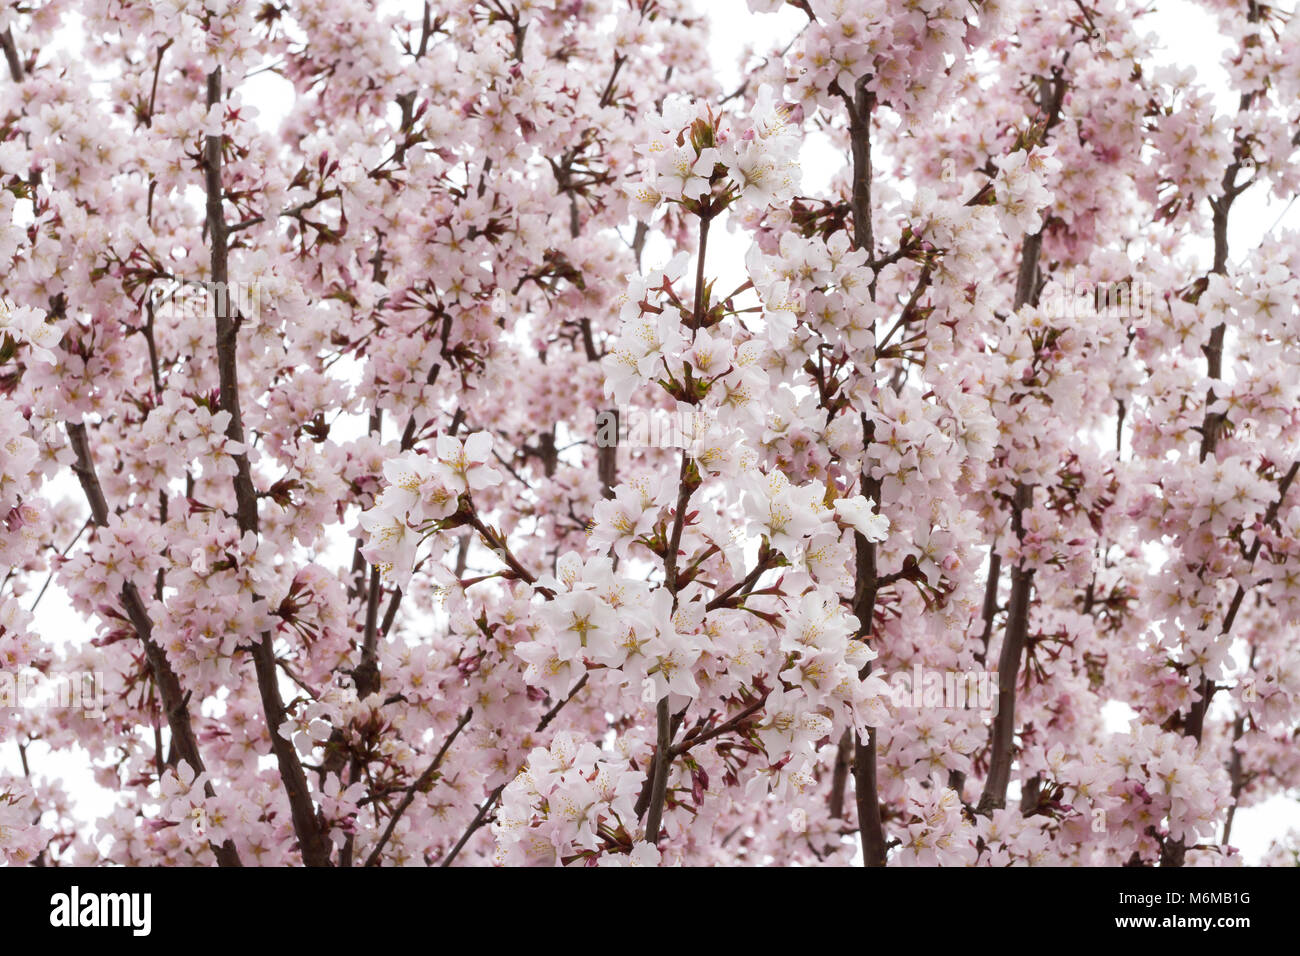 Pink airy japanese sakura or cherry blossom in spring. Soft, gentle, flower background. - Stock Image